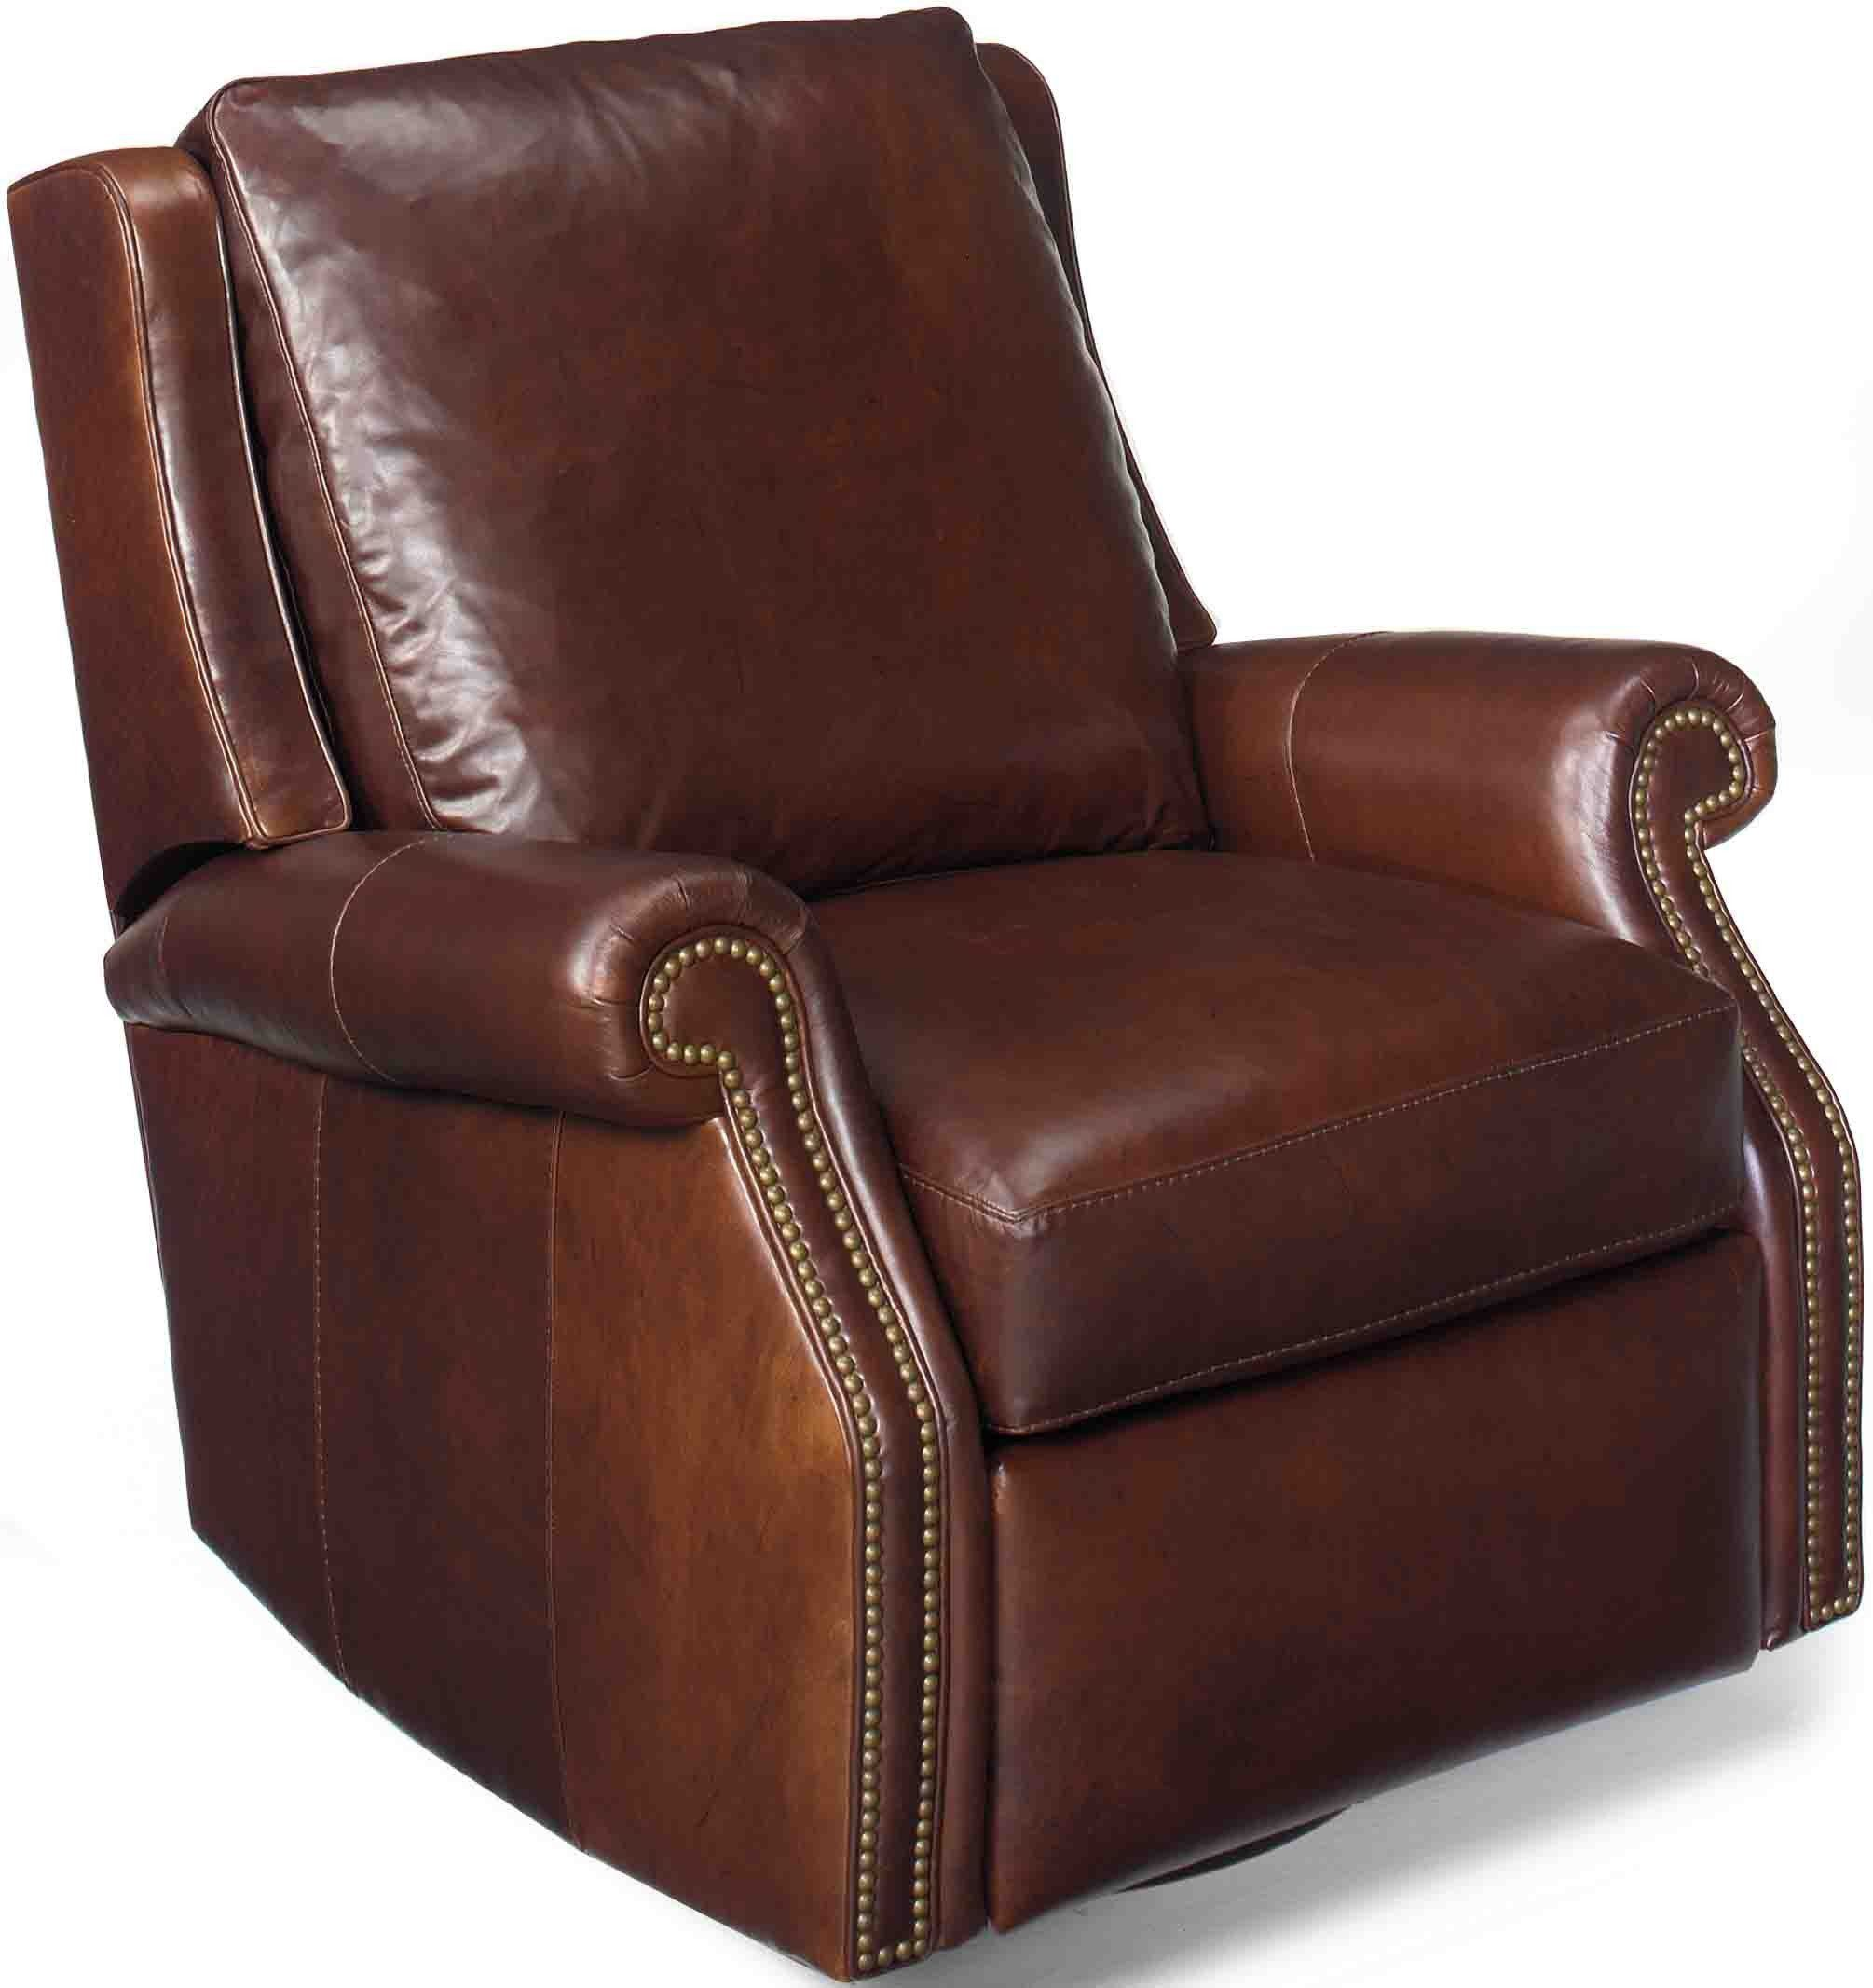 Chair Leather Reclining Swivel Bradington Young Barcelo Swivel Glider Recliner By 7411 Sg